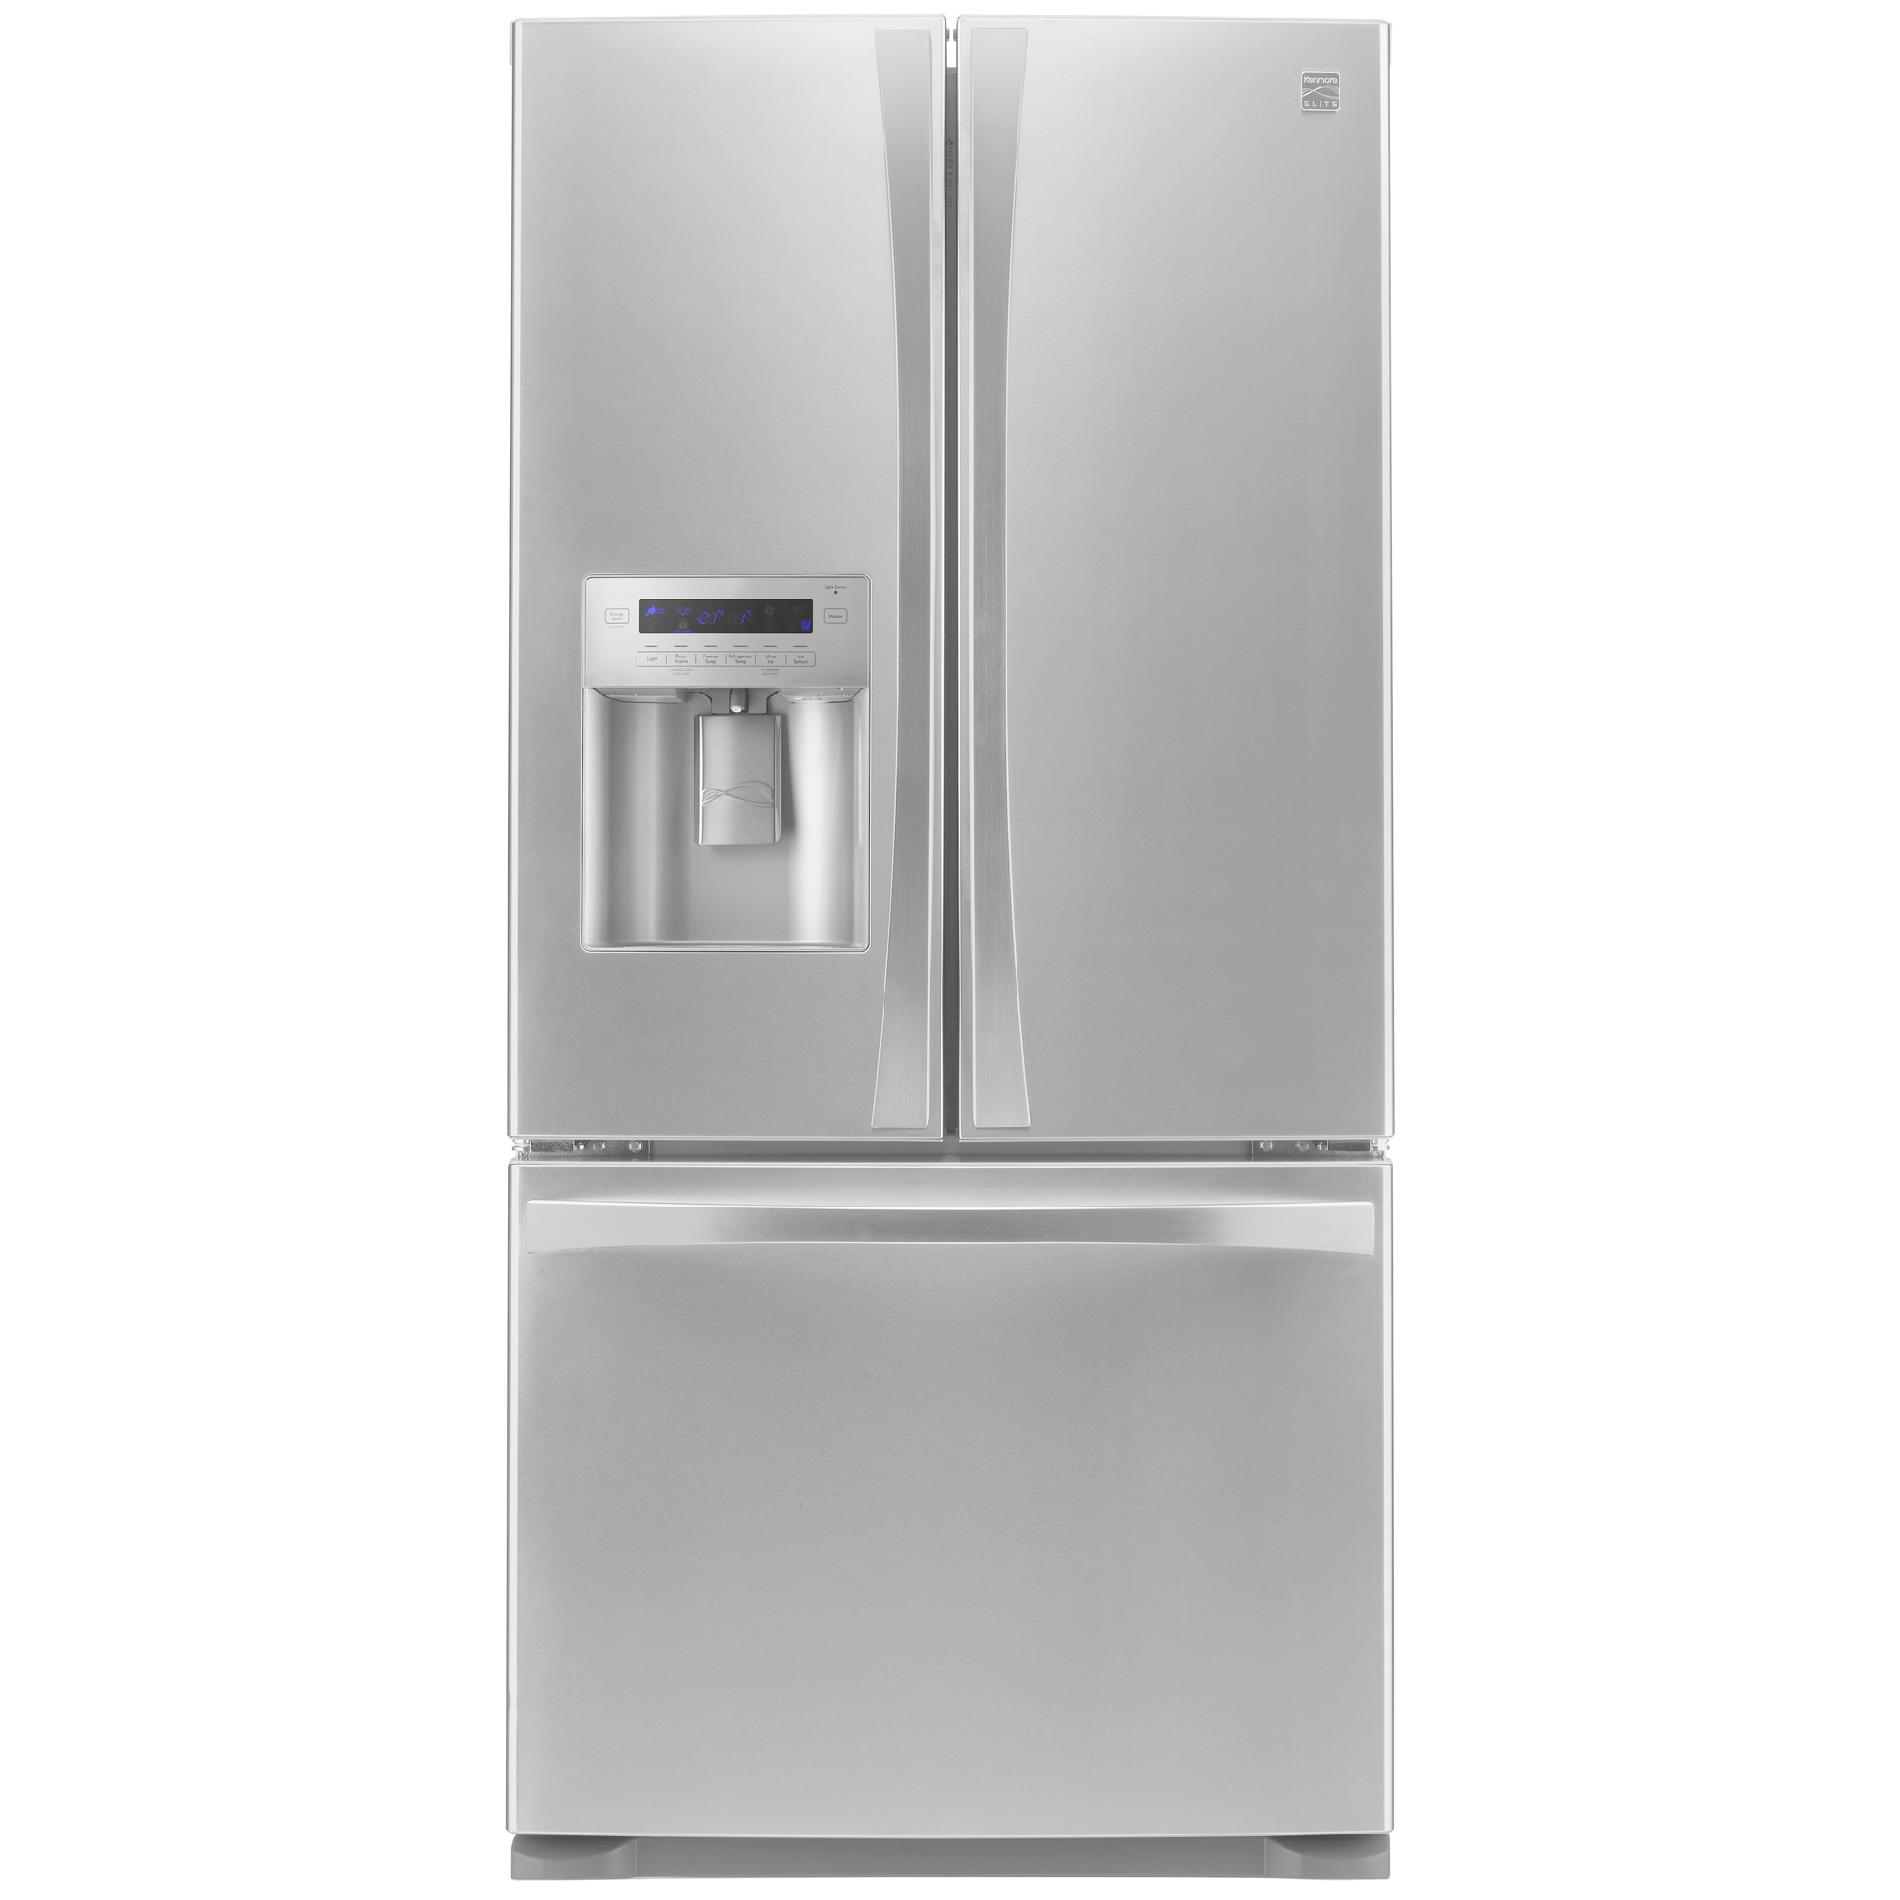 Sears Appliances Tools Apparel And More From Craftsman Kenmo French Door Bottom Freezer French Door Bottom Freezer Refrigerator Bottom Freezer Refrigerator